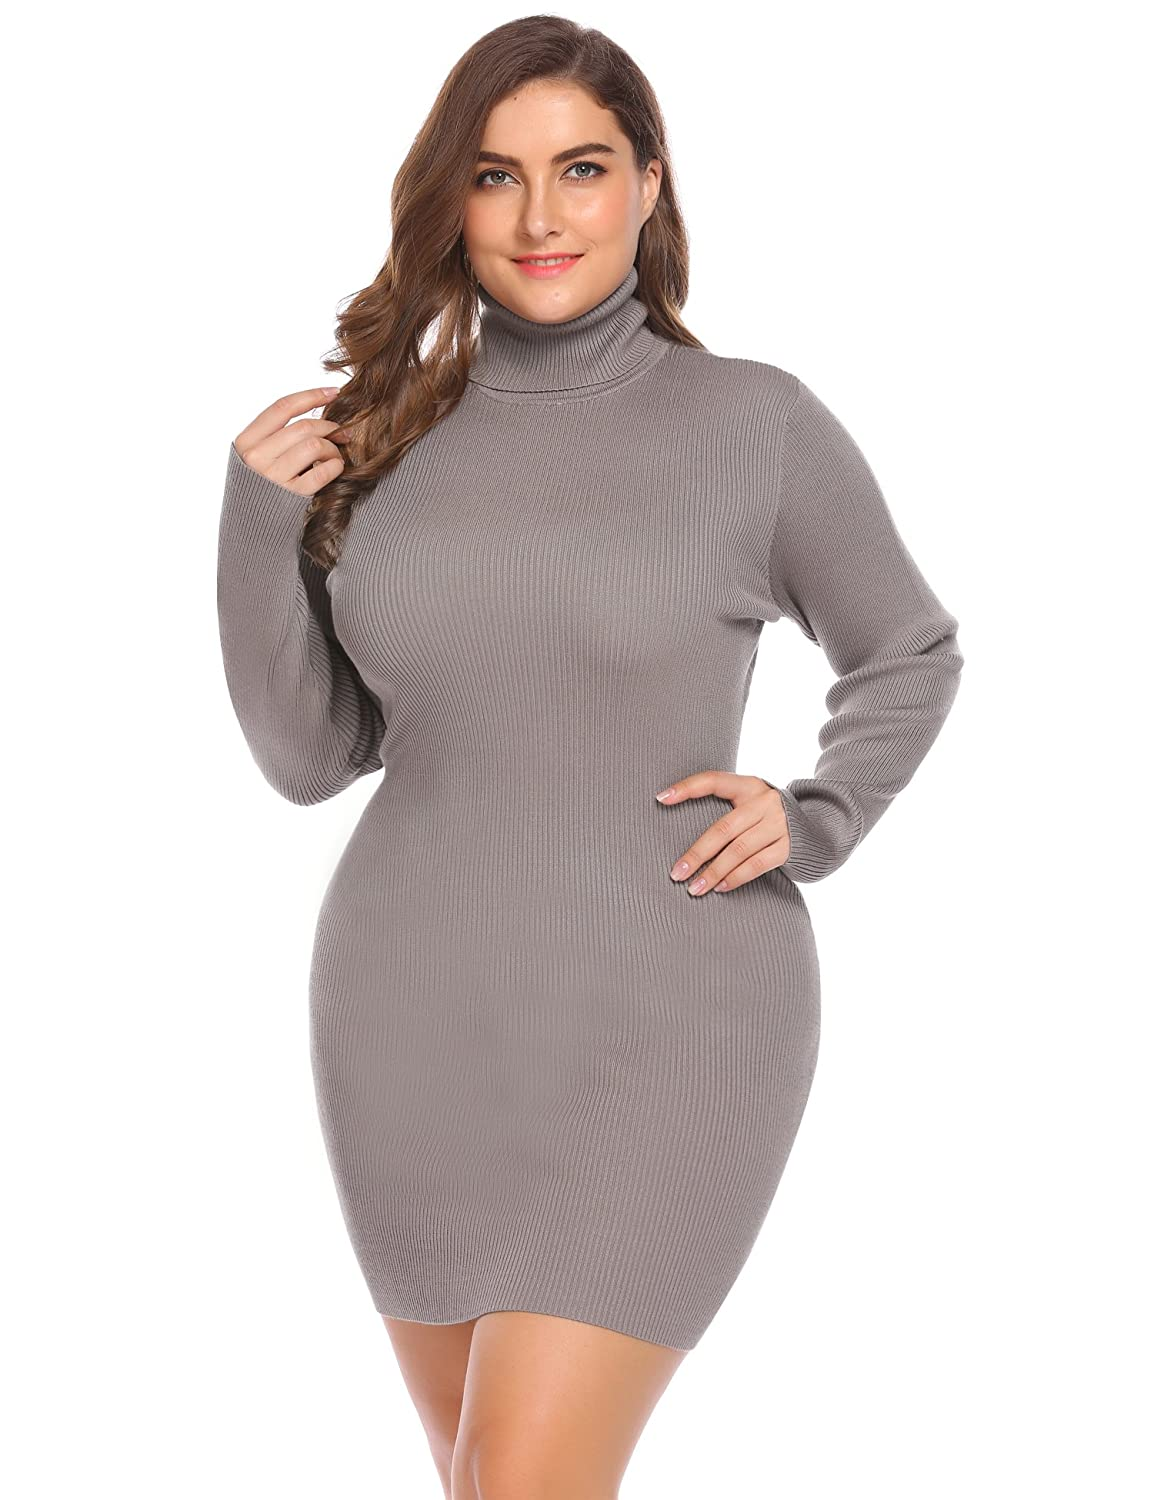 87536e919d Zeagoo Women Lady Plus Size Turtleneck Stretchable Knit Pullover Bodycon  Sweater Dress at Amazon Women s Clothing store